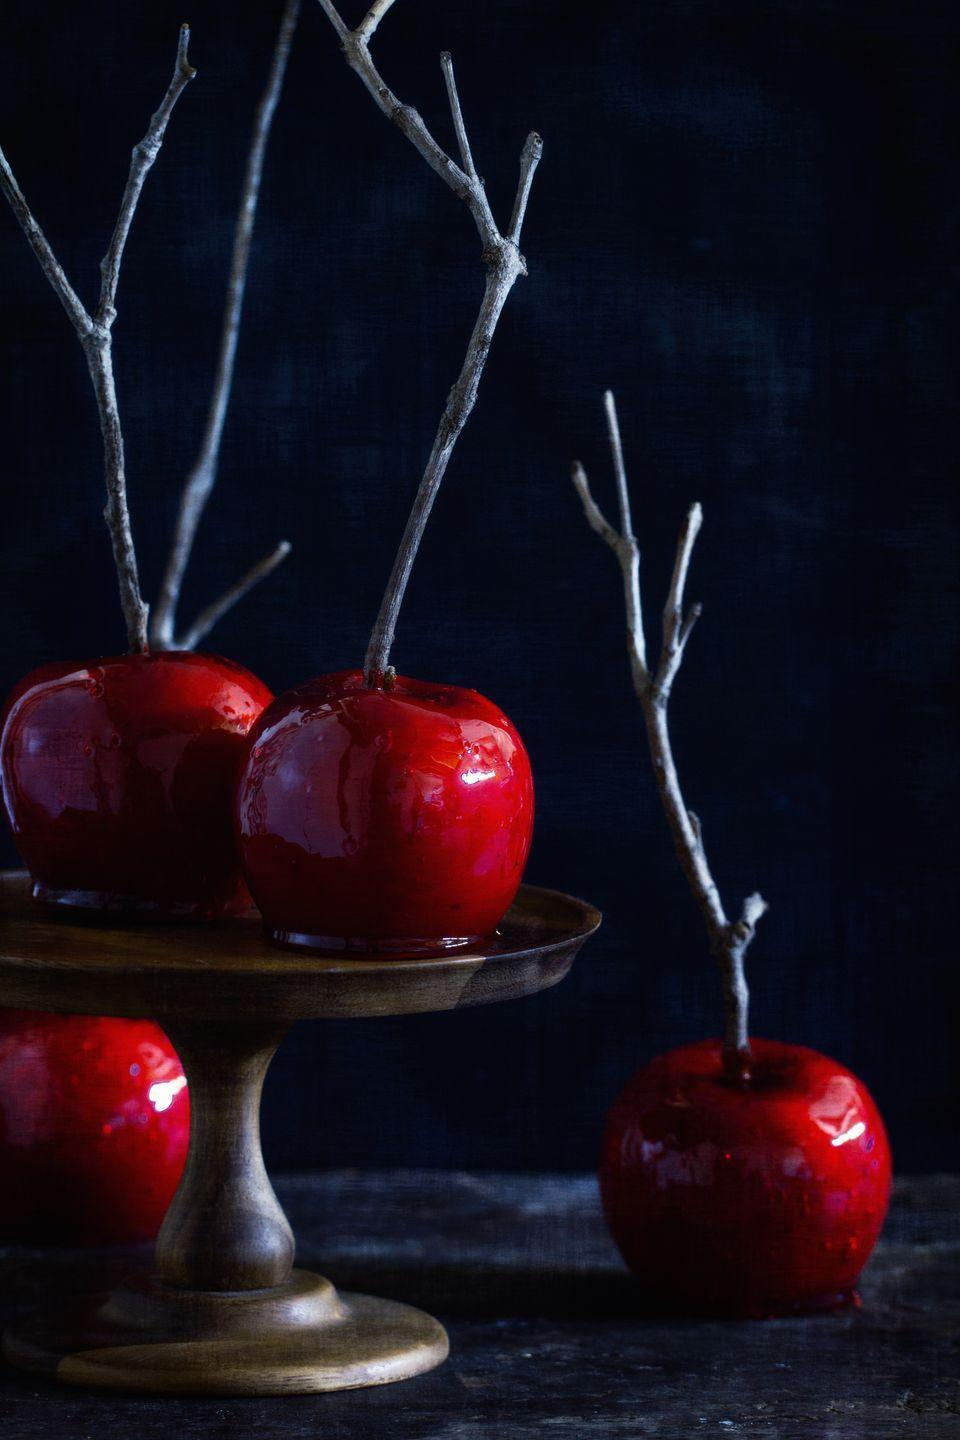 """<p>These candy apples are hot, hot, hot!</p><p>Get the recipe from <a href=""""https://www.delish.com/cooking/recipe-ideas/recipes/a43935/candied-apples-recipe/"""" rel=""""nofollow noopener"""" target=""""_blank"""" data-ylk=""""slk:Delish"""" class=""""link rapid-noclick-resp"""">Delish</a>. </p>"""